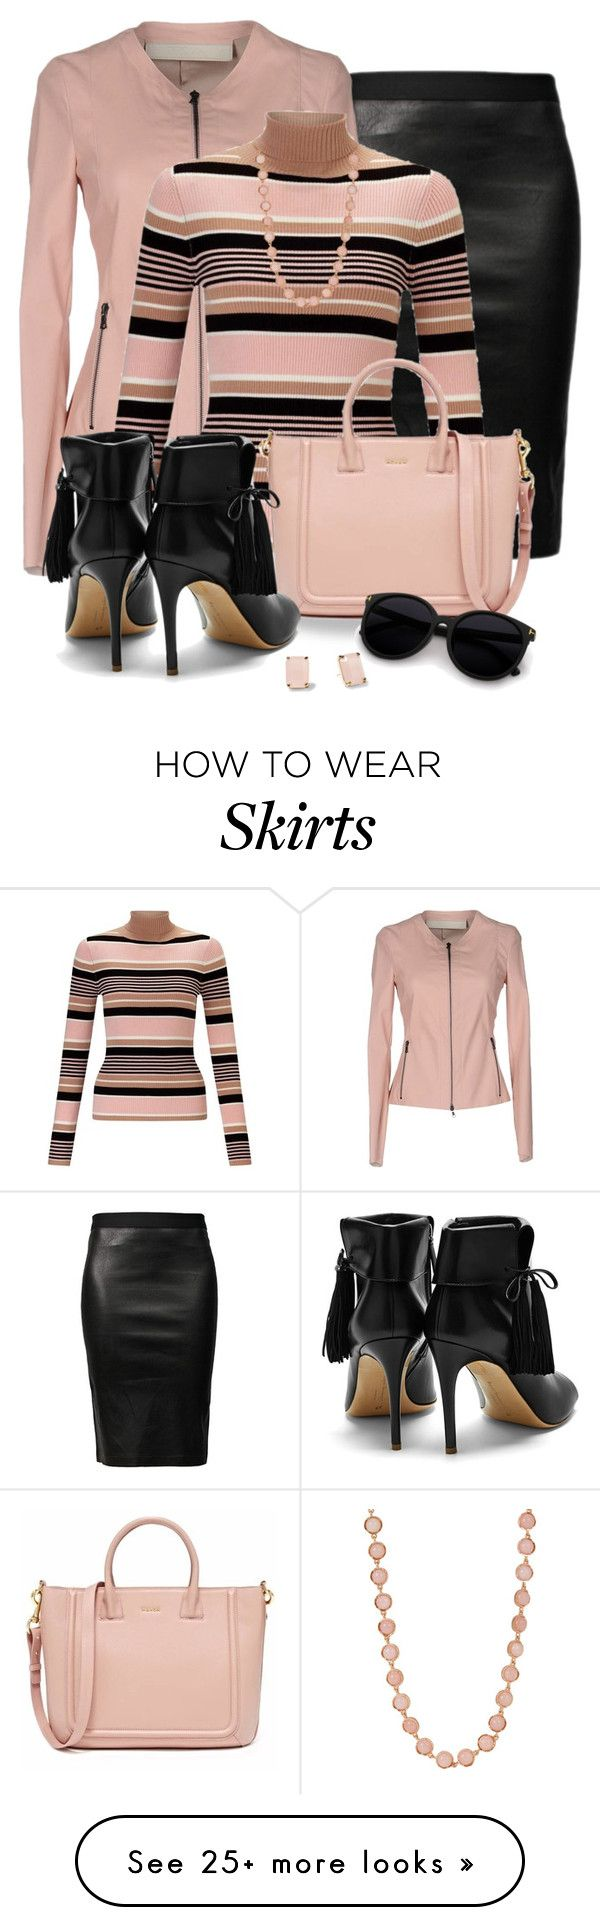 """Leather Jacket and Skirt"" by snickersmother on Polyvore featuring Helmut Lang, Drome, Miss Selfridge, Rupert Sanderson, Kate Spade and Irene Neuwirth"